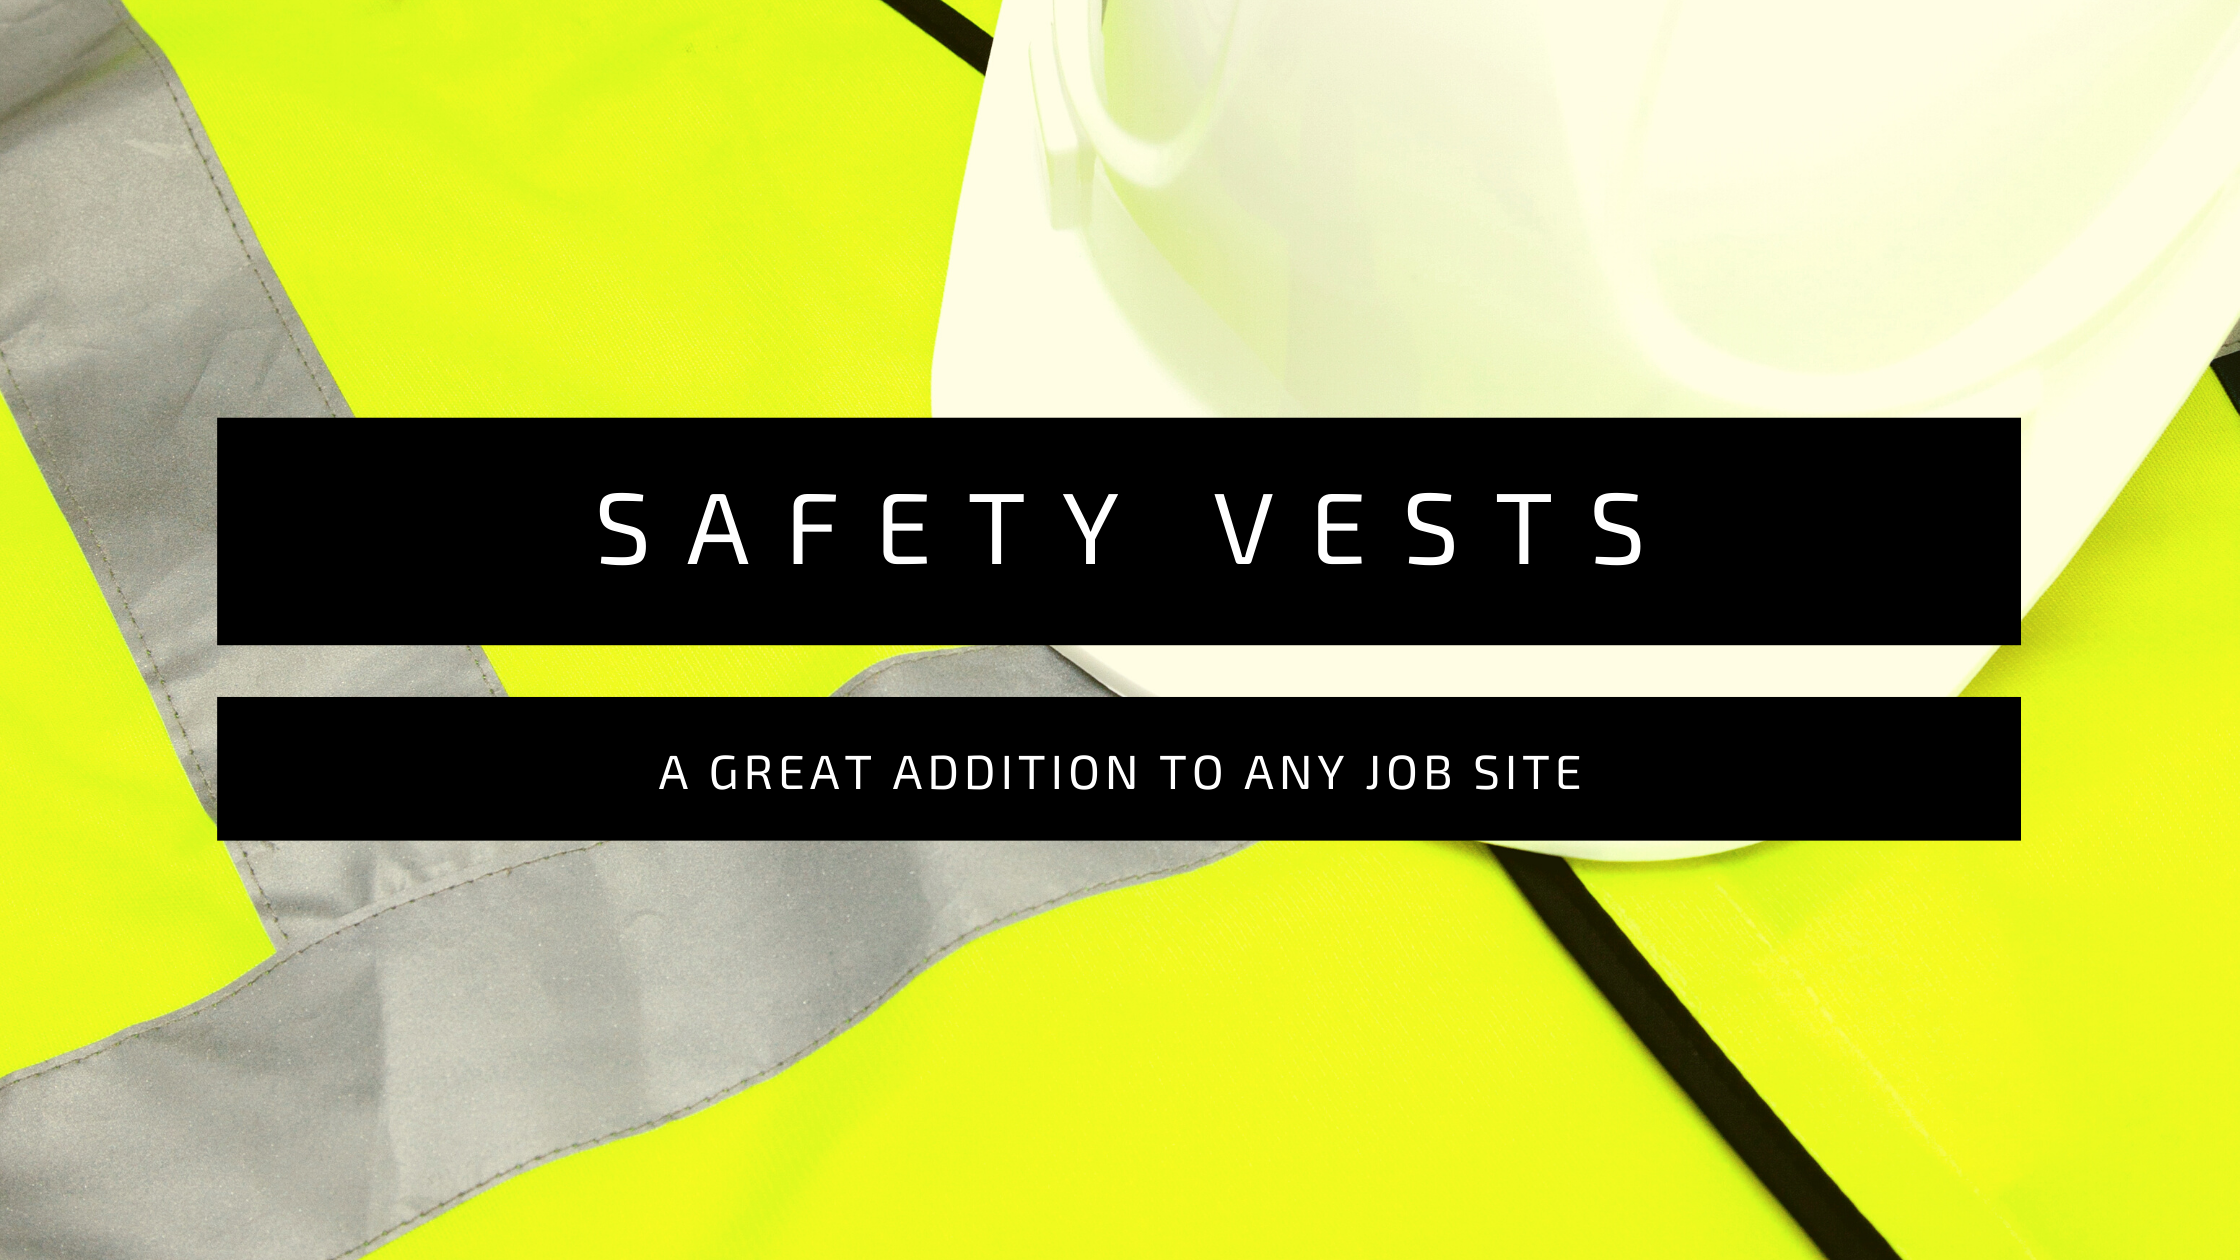 Add Safety Vests to Your Job Site